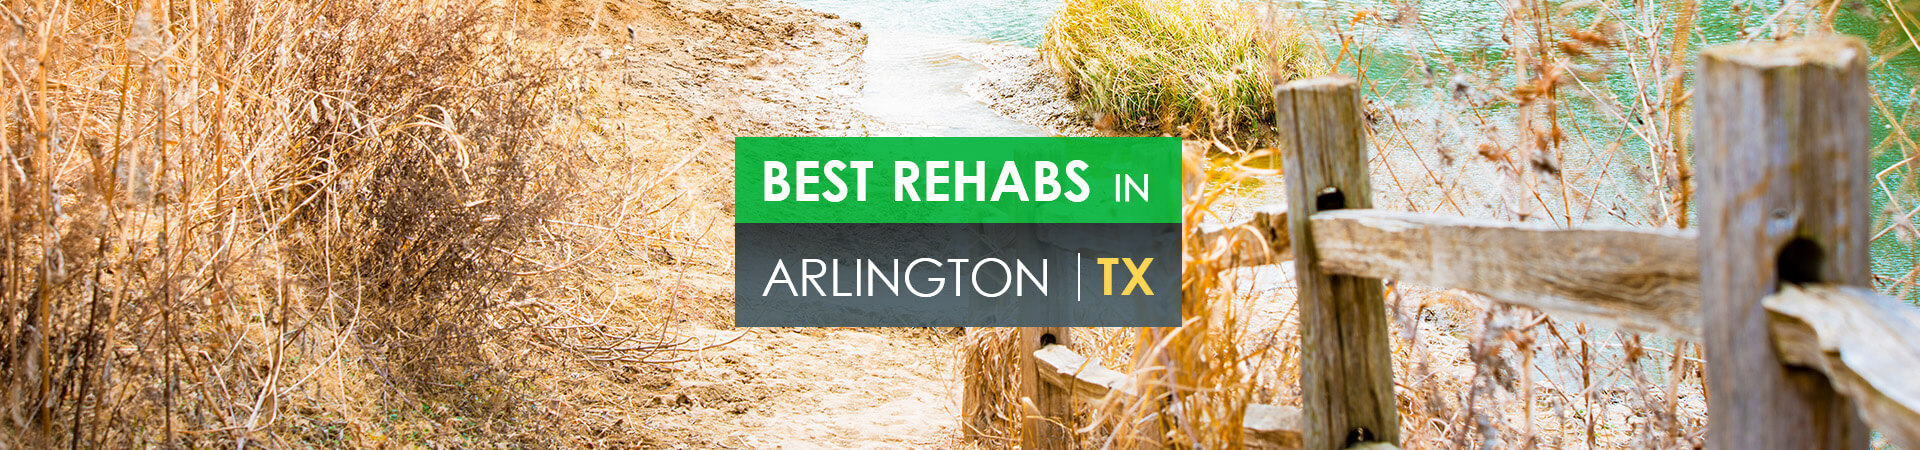 Best rehabs in Arlington, TX